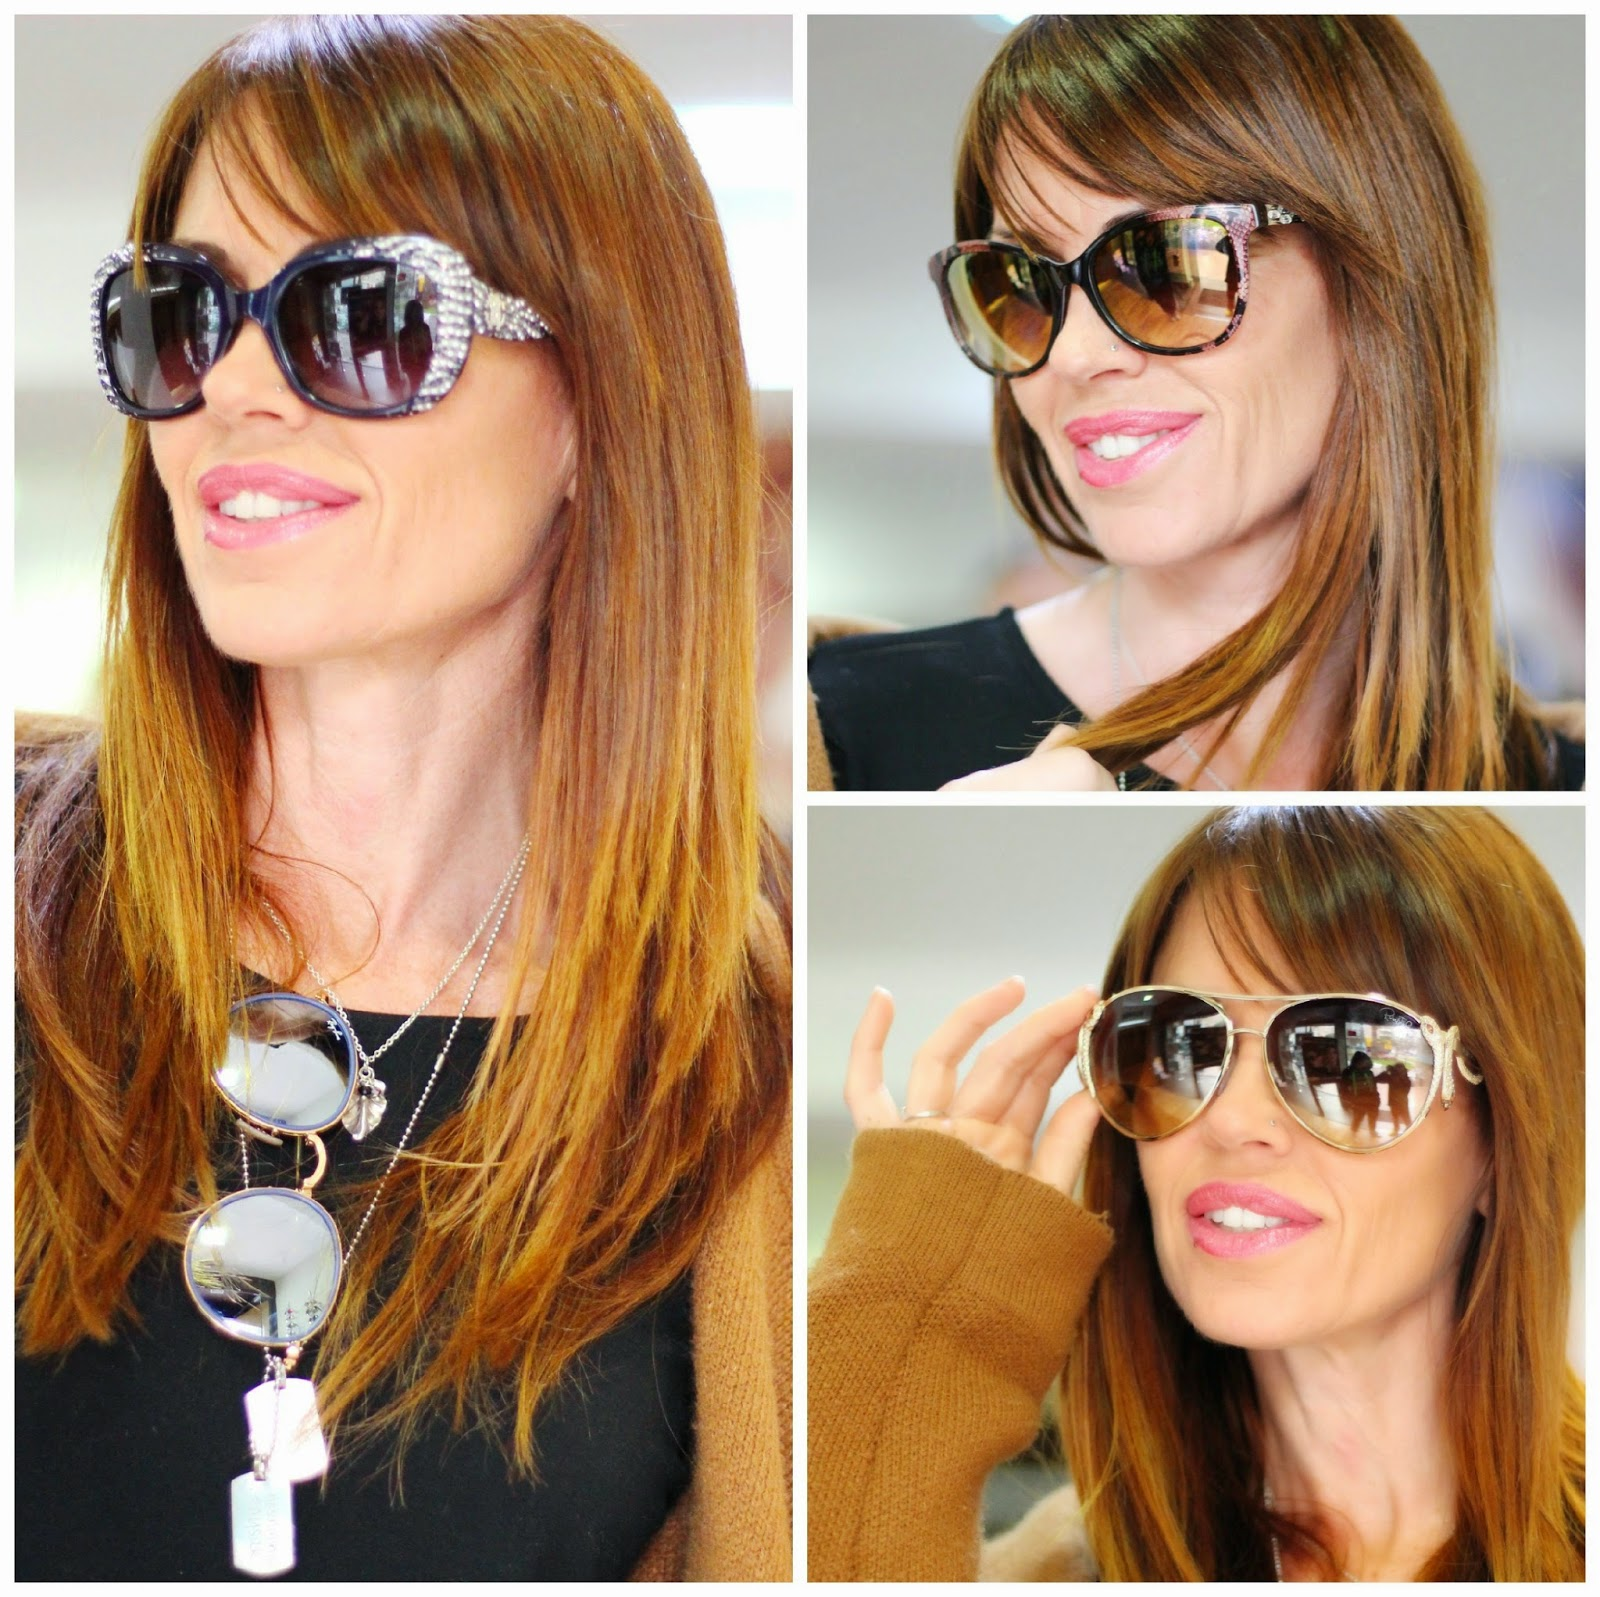 Tendencias gafas de sol 2015 - Cavalli - Tom Ford - Dsquared - Fashion Blogger - Sunnies